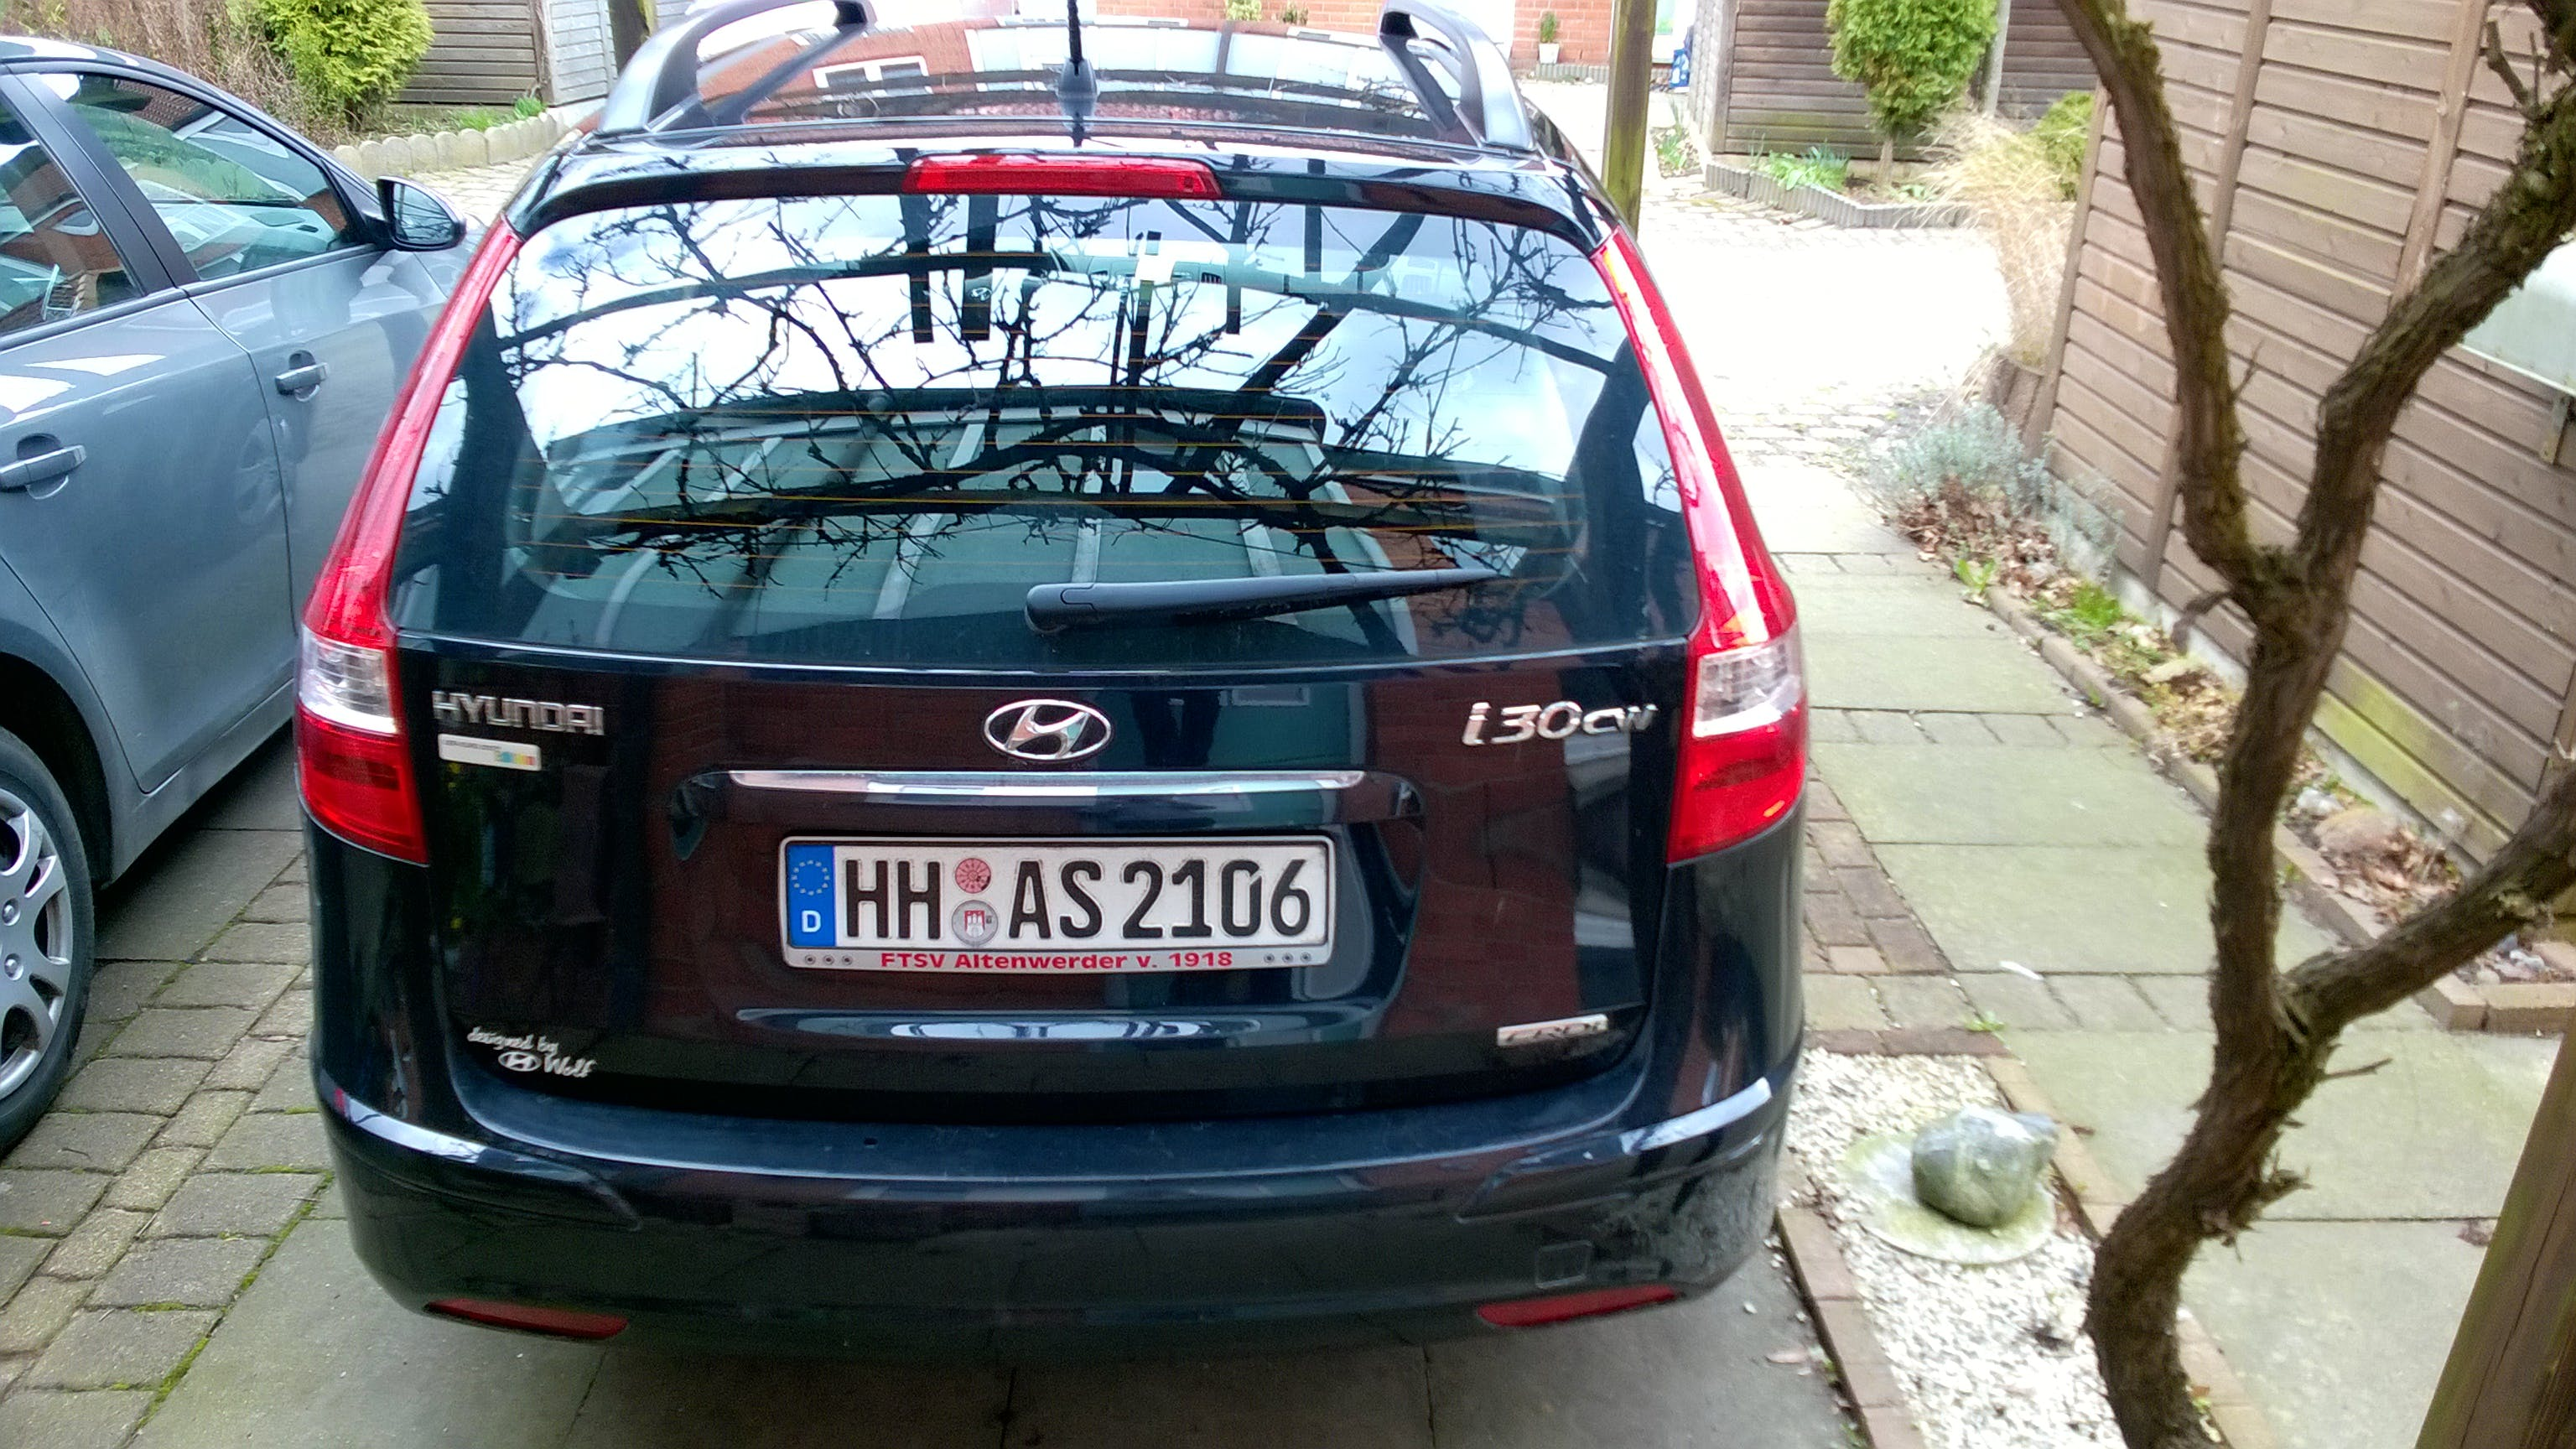 Hyundai i30 CW mit CD-Player